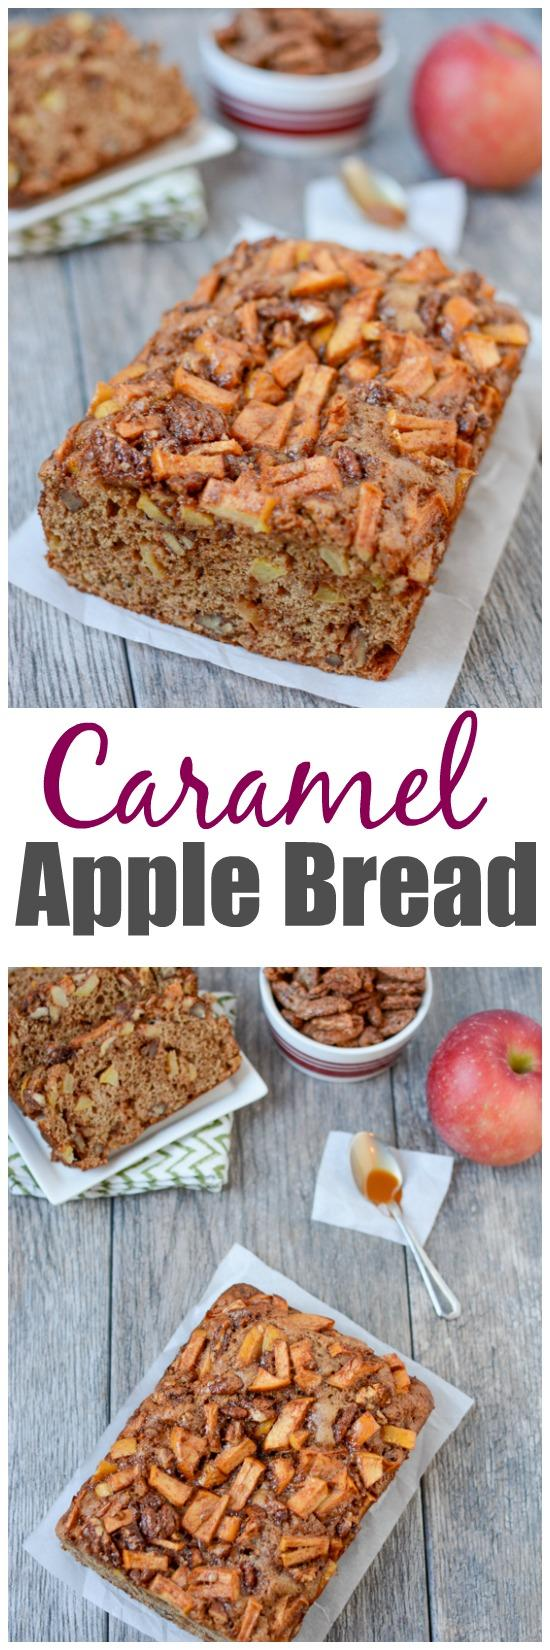 Studded with sweet cinnamon apples and pecans, this Caramel Apple Bread makes the perfect snack. Plus 5 more delicious ways to eat apples!